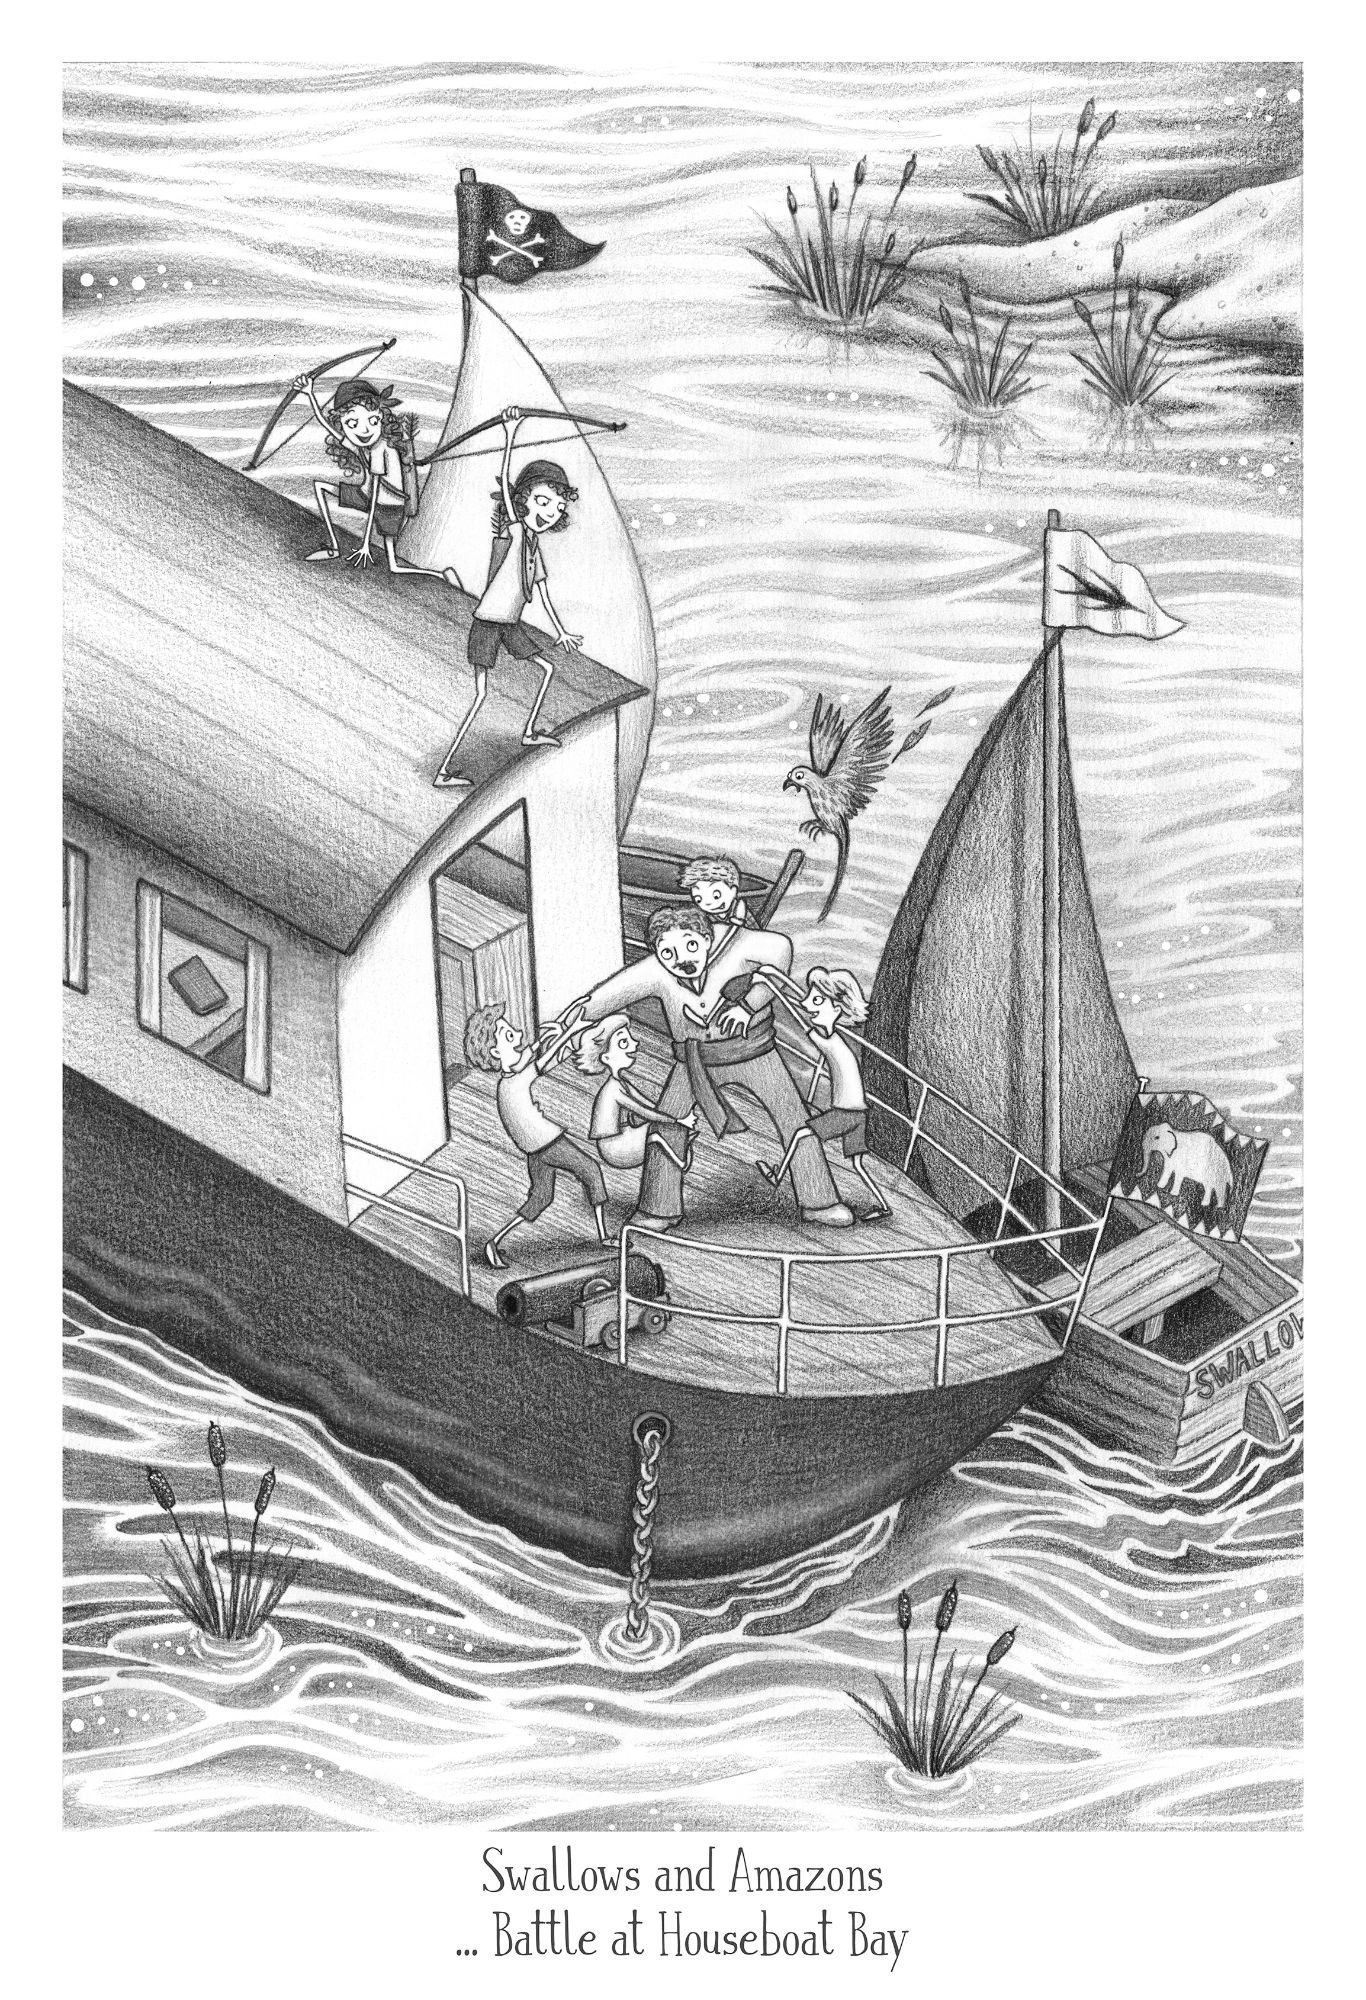 Swallows and Amazons illustration - Battle at Houseboat Bay